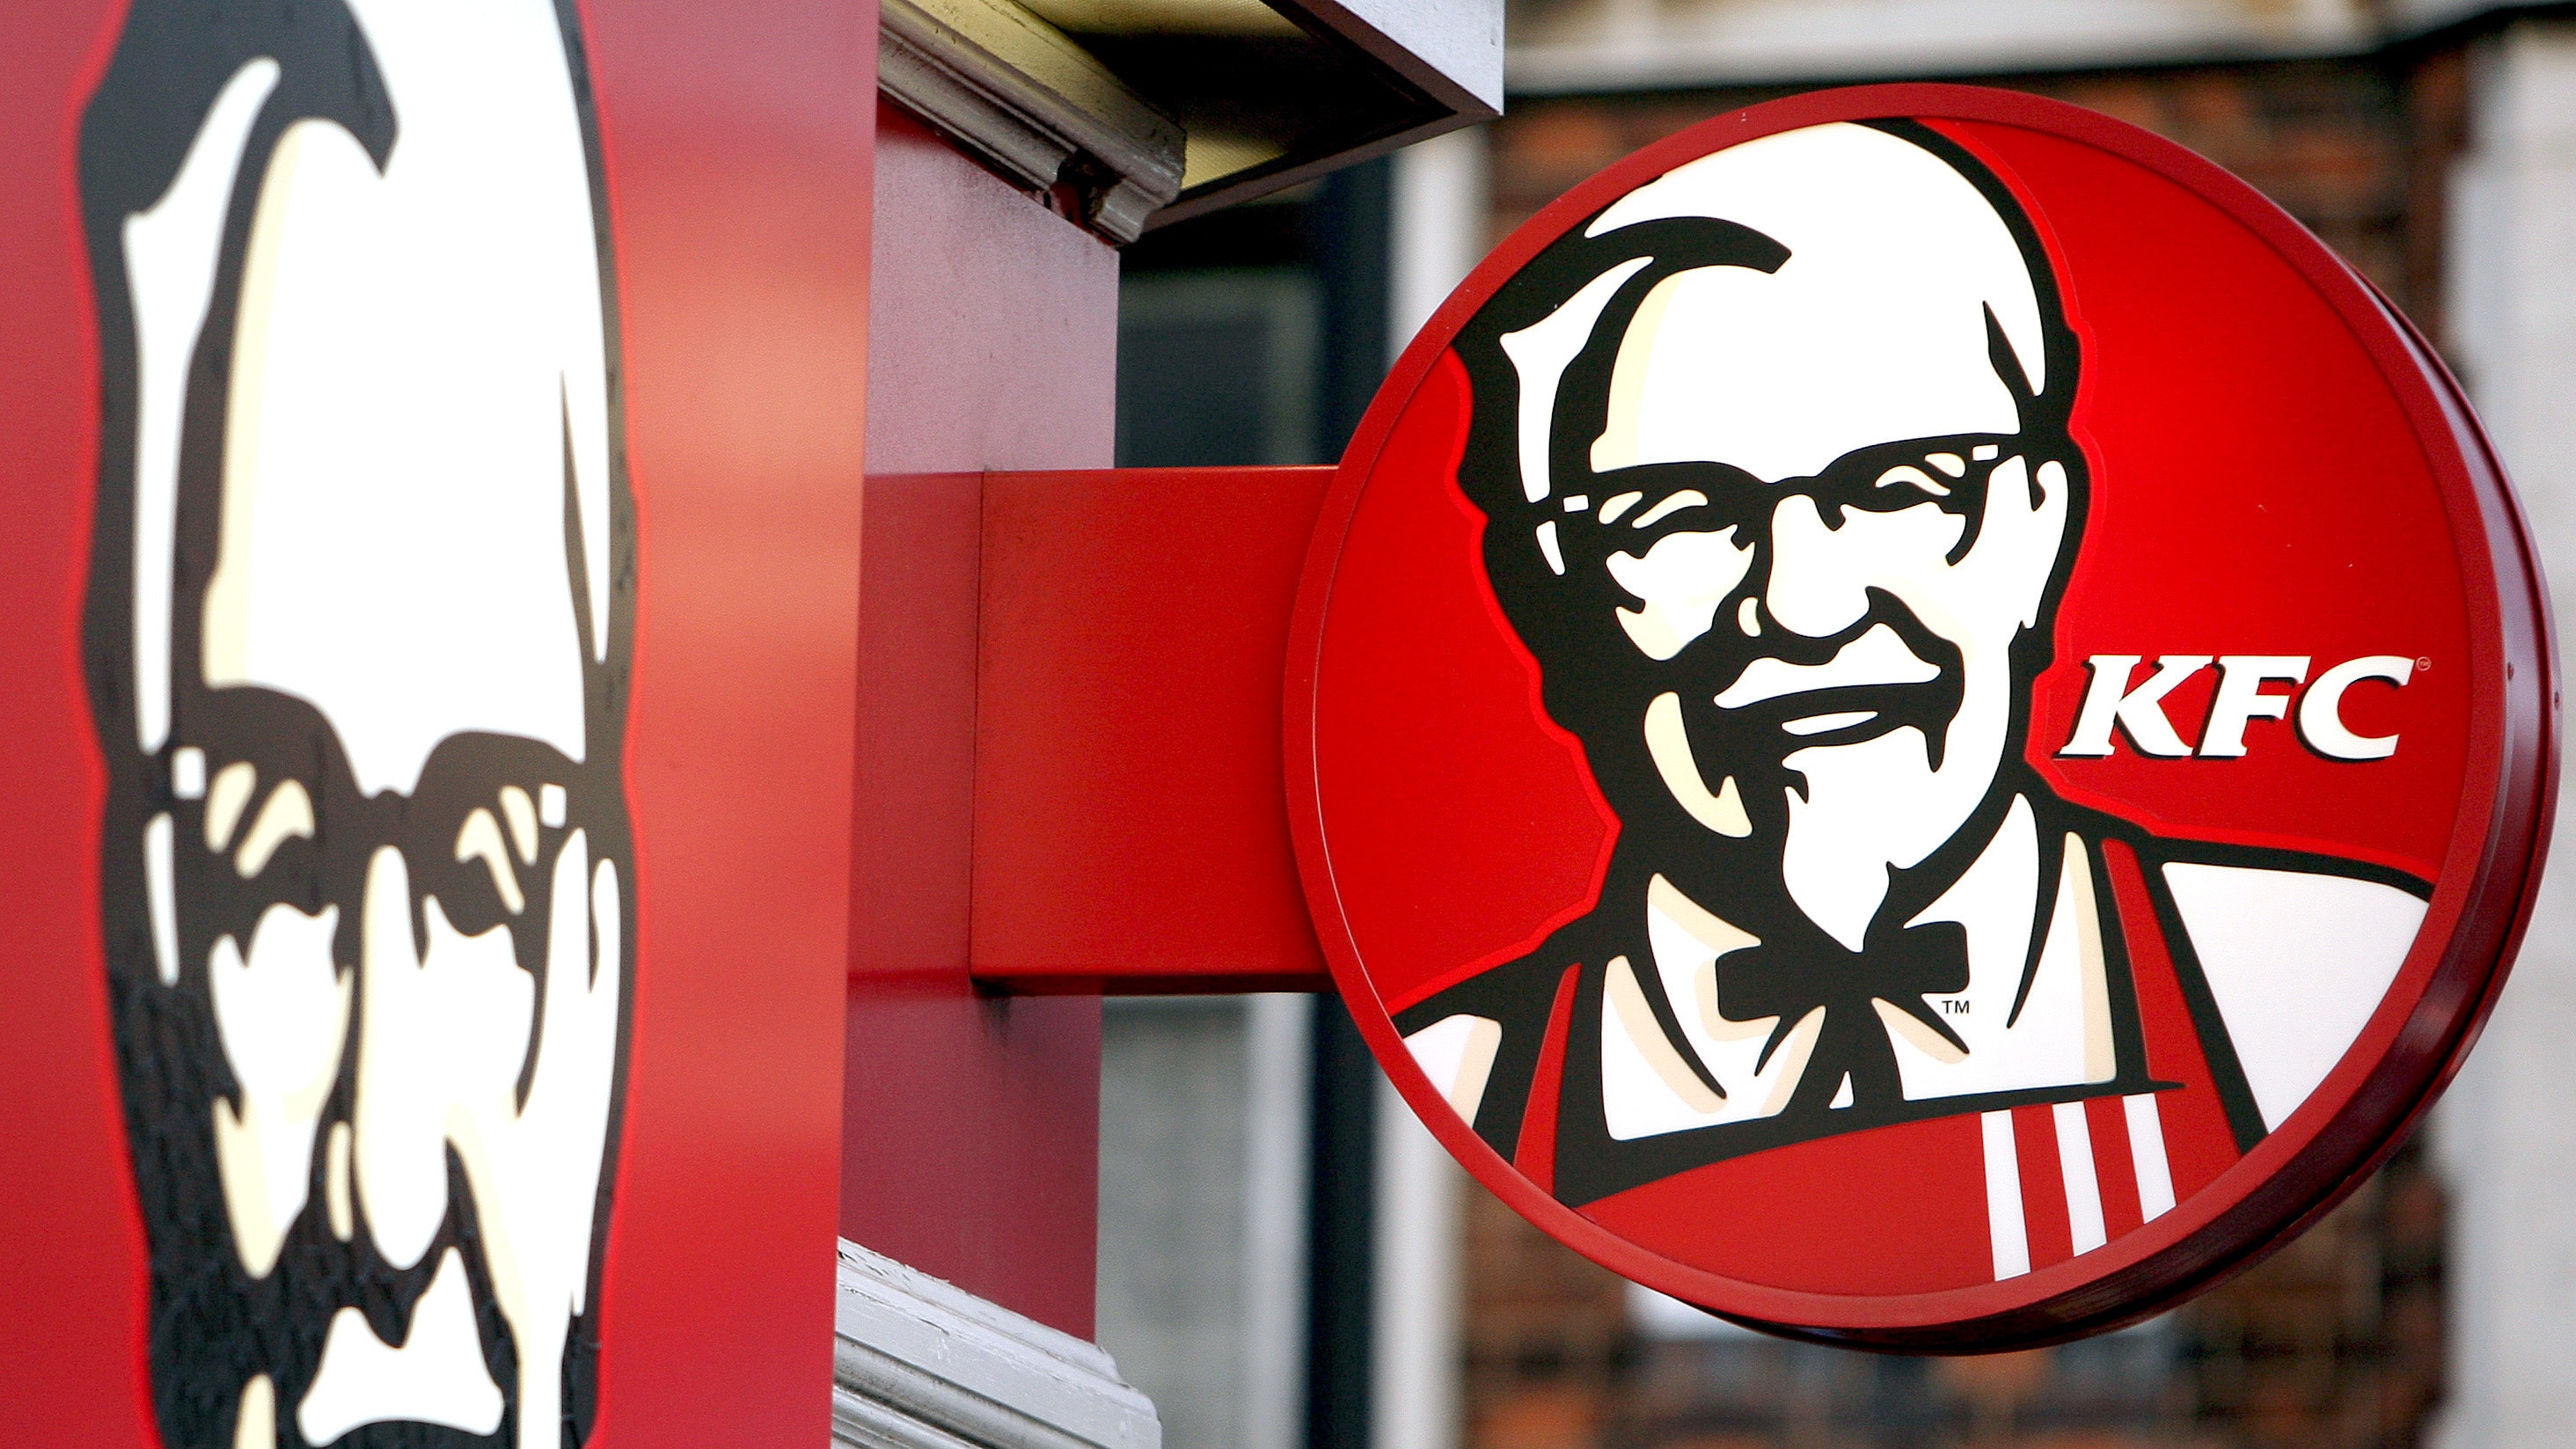 KFC returns to original supplier after chicken shortage fiasco